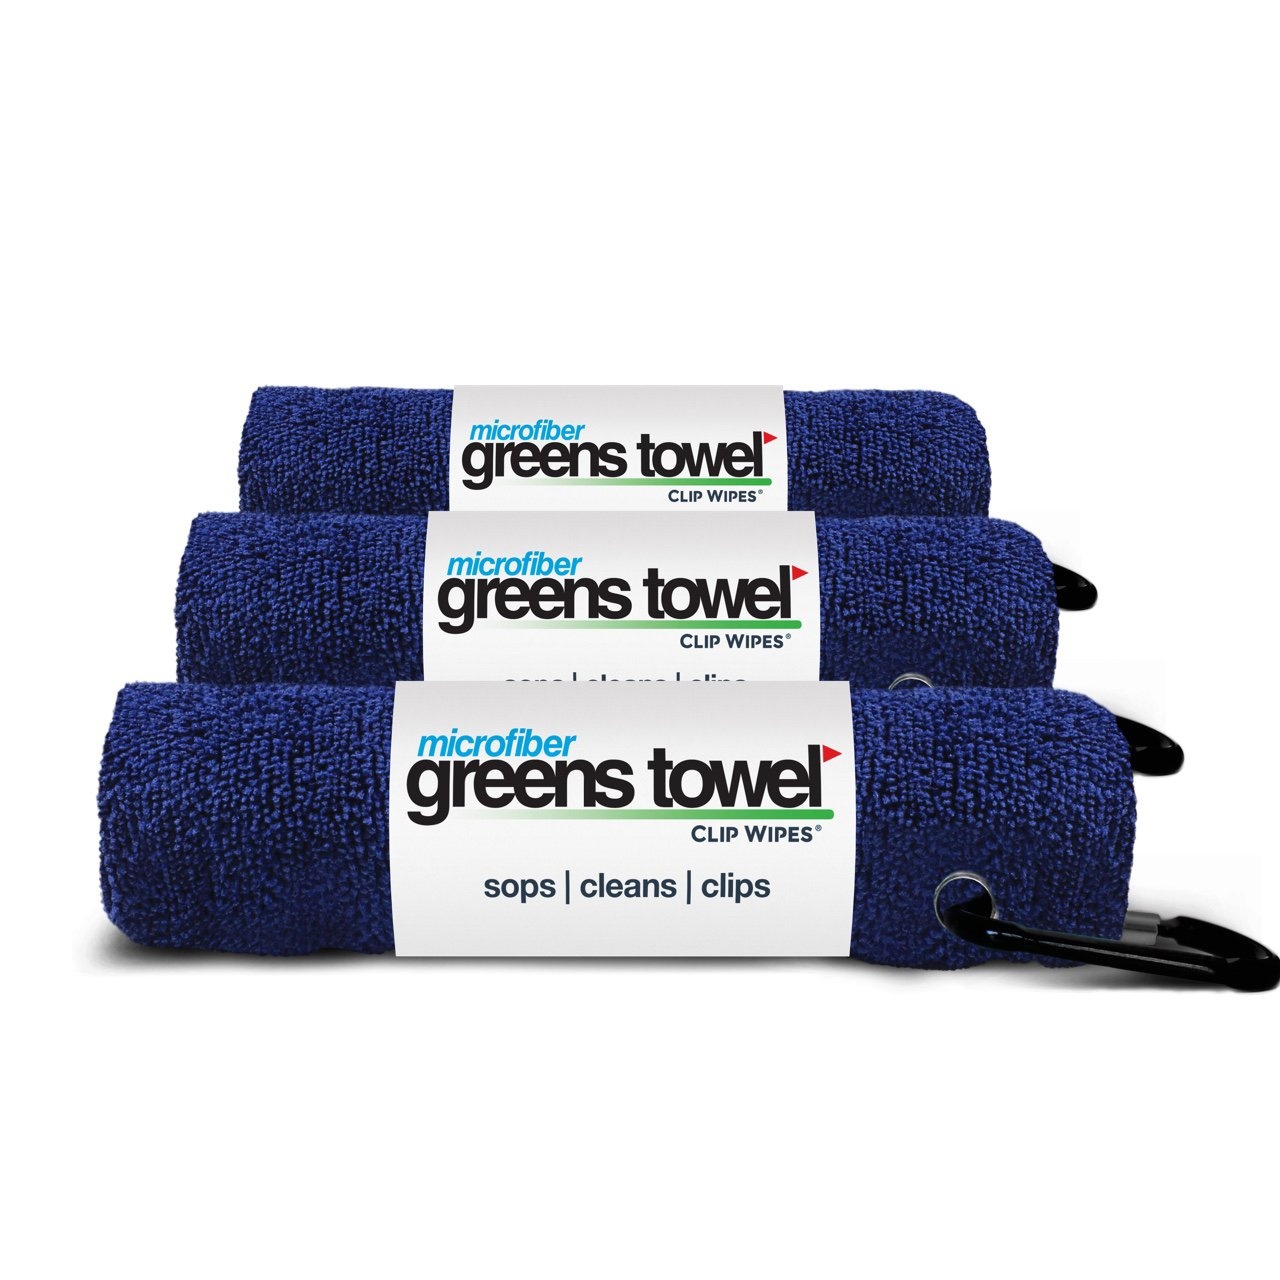 3 Pack of Navy Blue Microfiber Golf Towels by Greens Towel